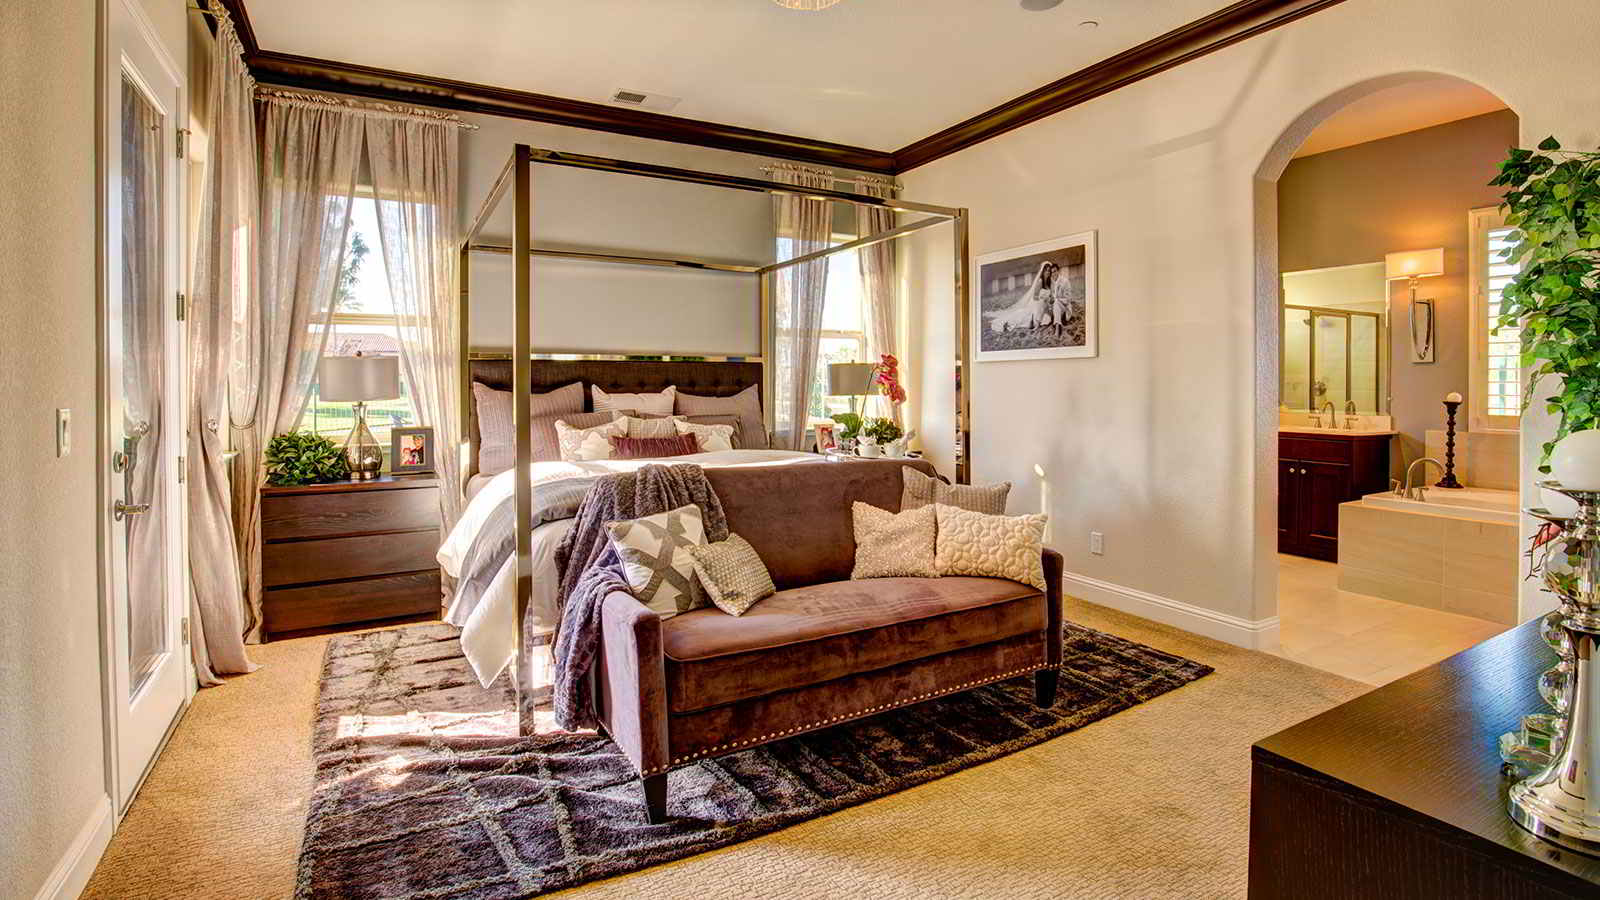 A warm neutral toned room, with a plush bench at the foot of the mid-century modern style bed.